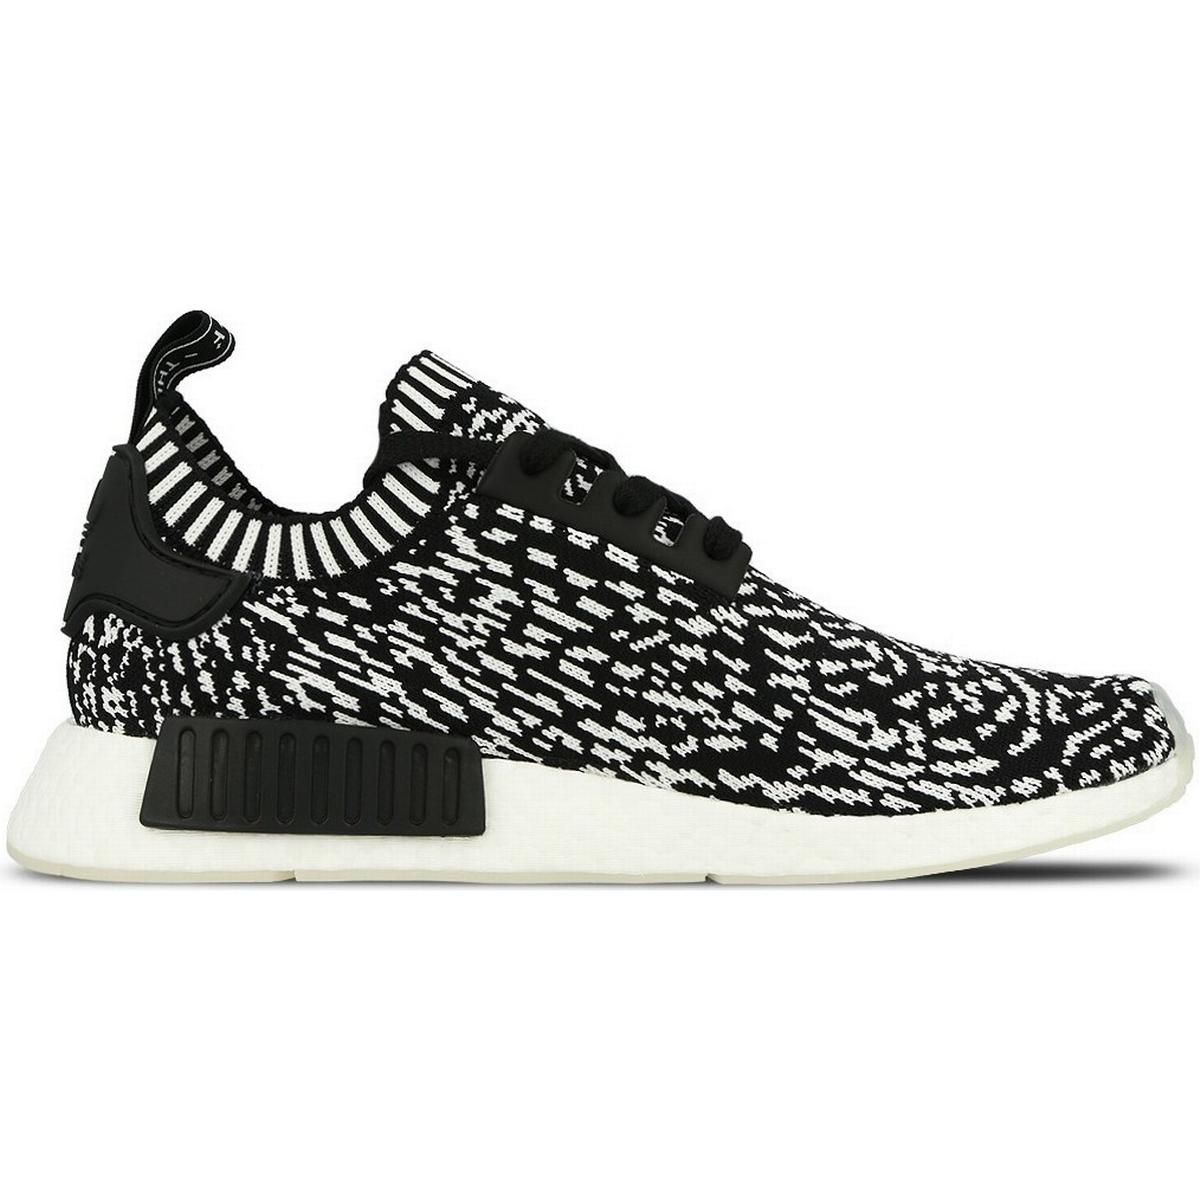 Adidas Originals NMD CS2 City Sock PK Primeknit Boost Dam